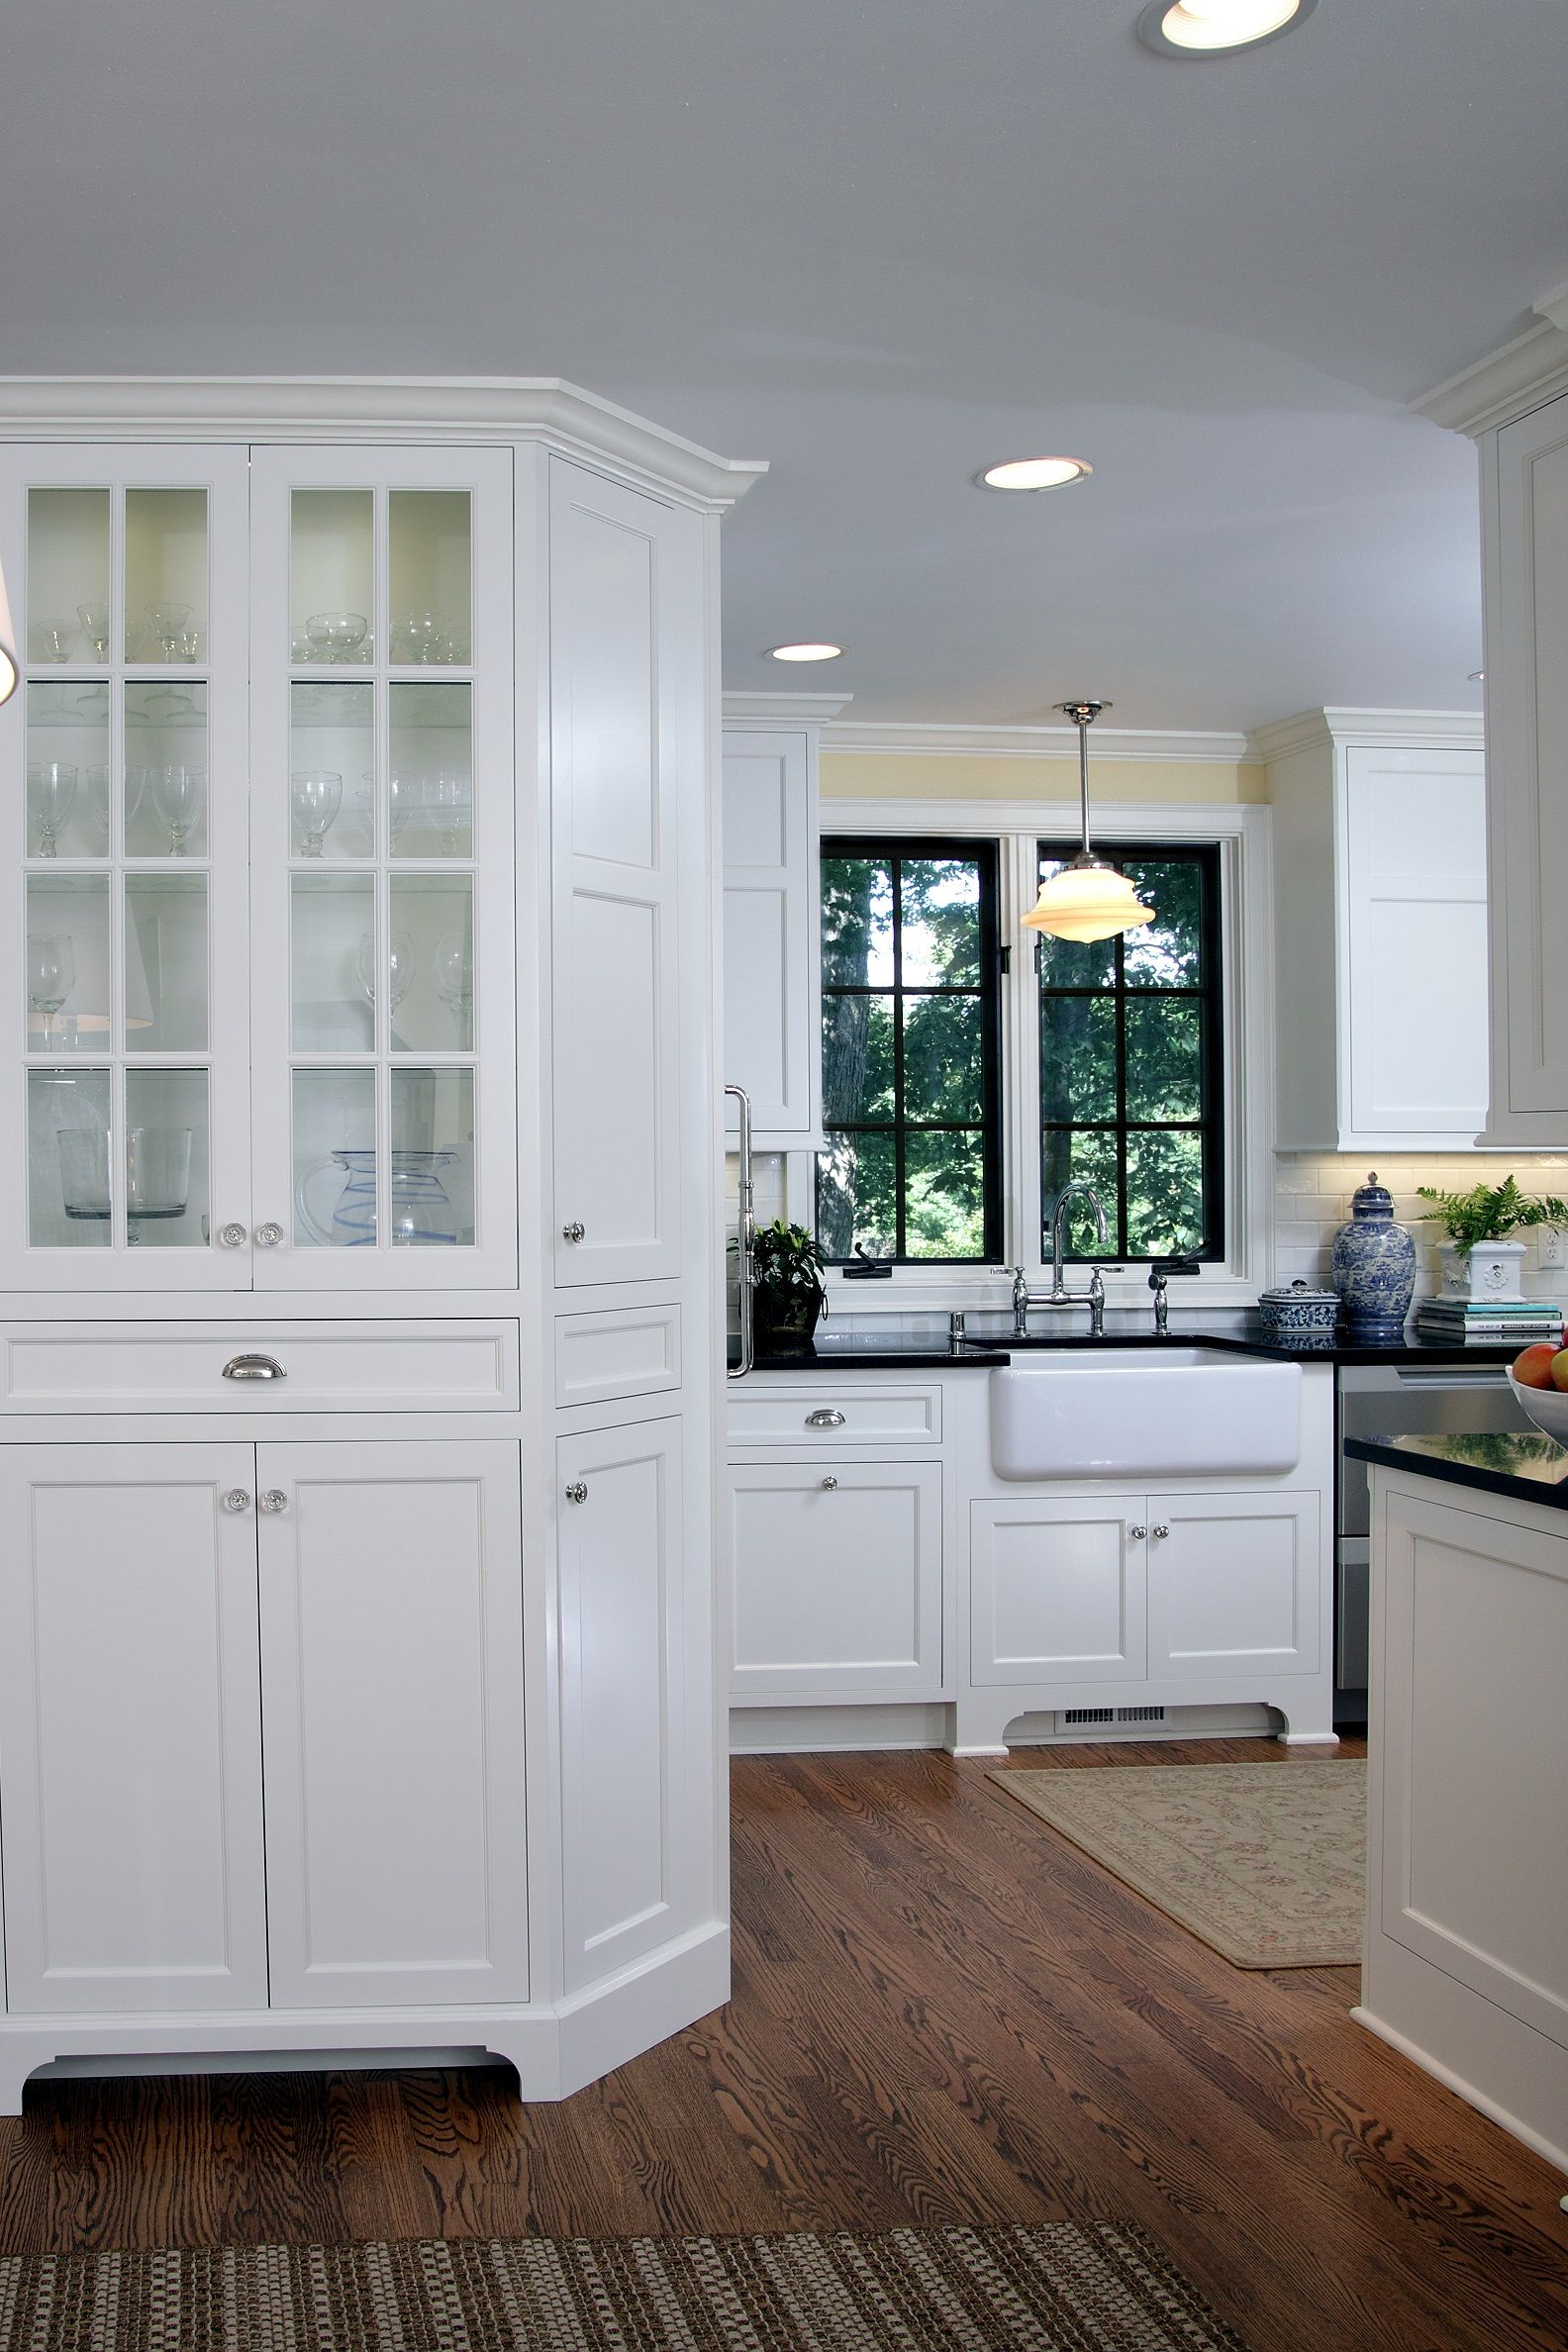 Traditional Kitchen With White Inset Cabinets Kitchen Projects Design Home Kitchens Cabinet Door Styles